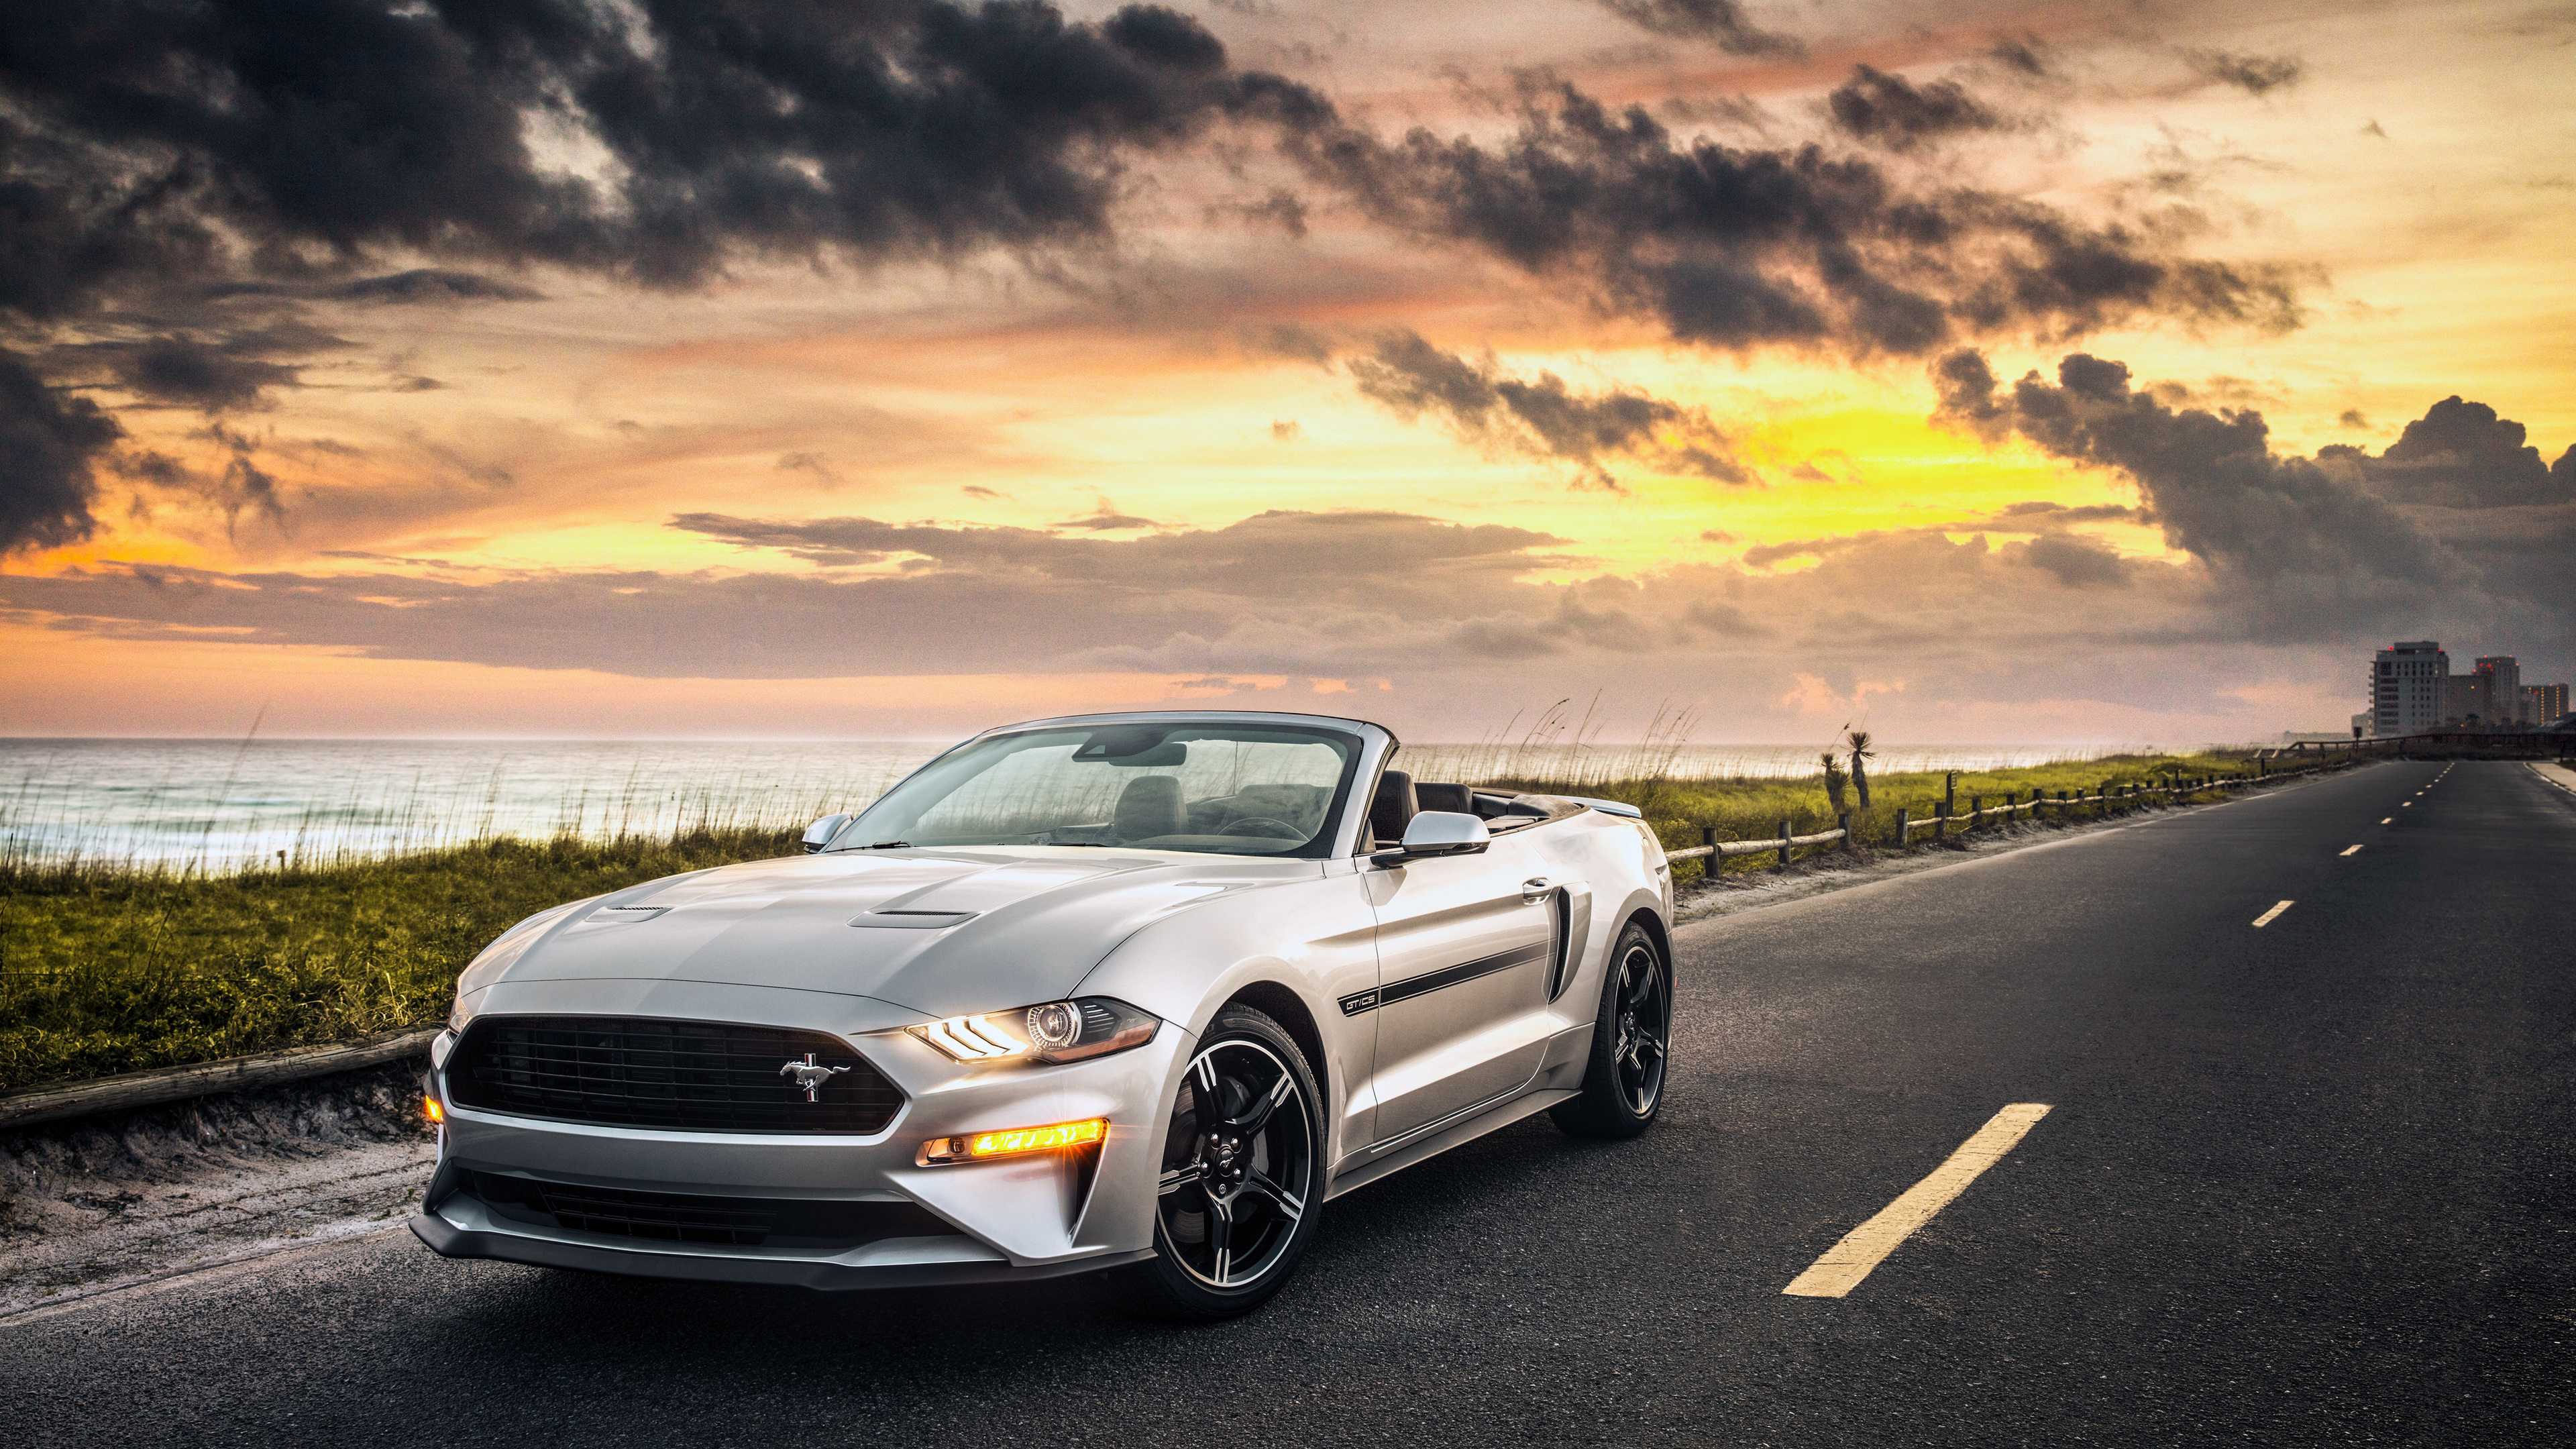 ford mustang gt convertible 2019 4k 1539110280 - Ford Mustang GT Convertible 2019 4k - mustang wallpapers, hd-wallpapers, ford mustang wallpapers, convertible cars wallpapers, cars wallpapers, 4k-wallpapers, 2019 cars wallpapers